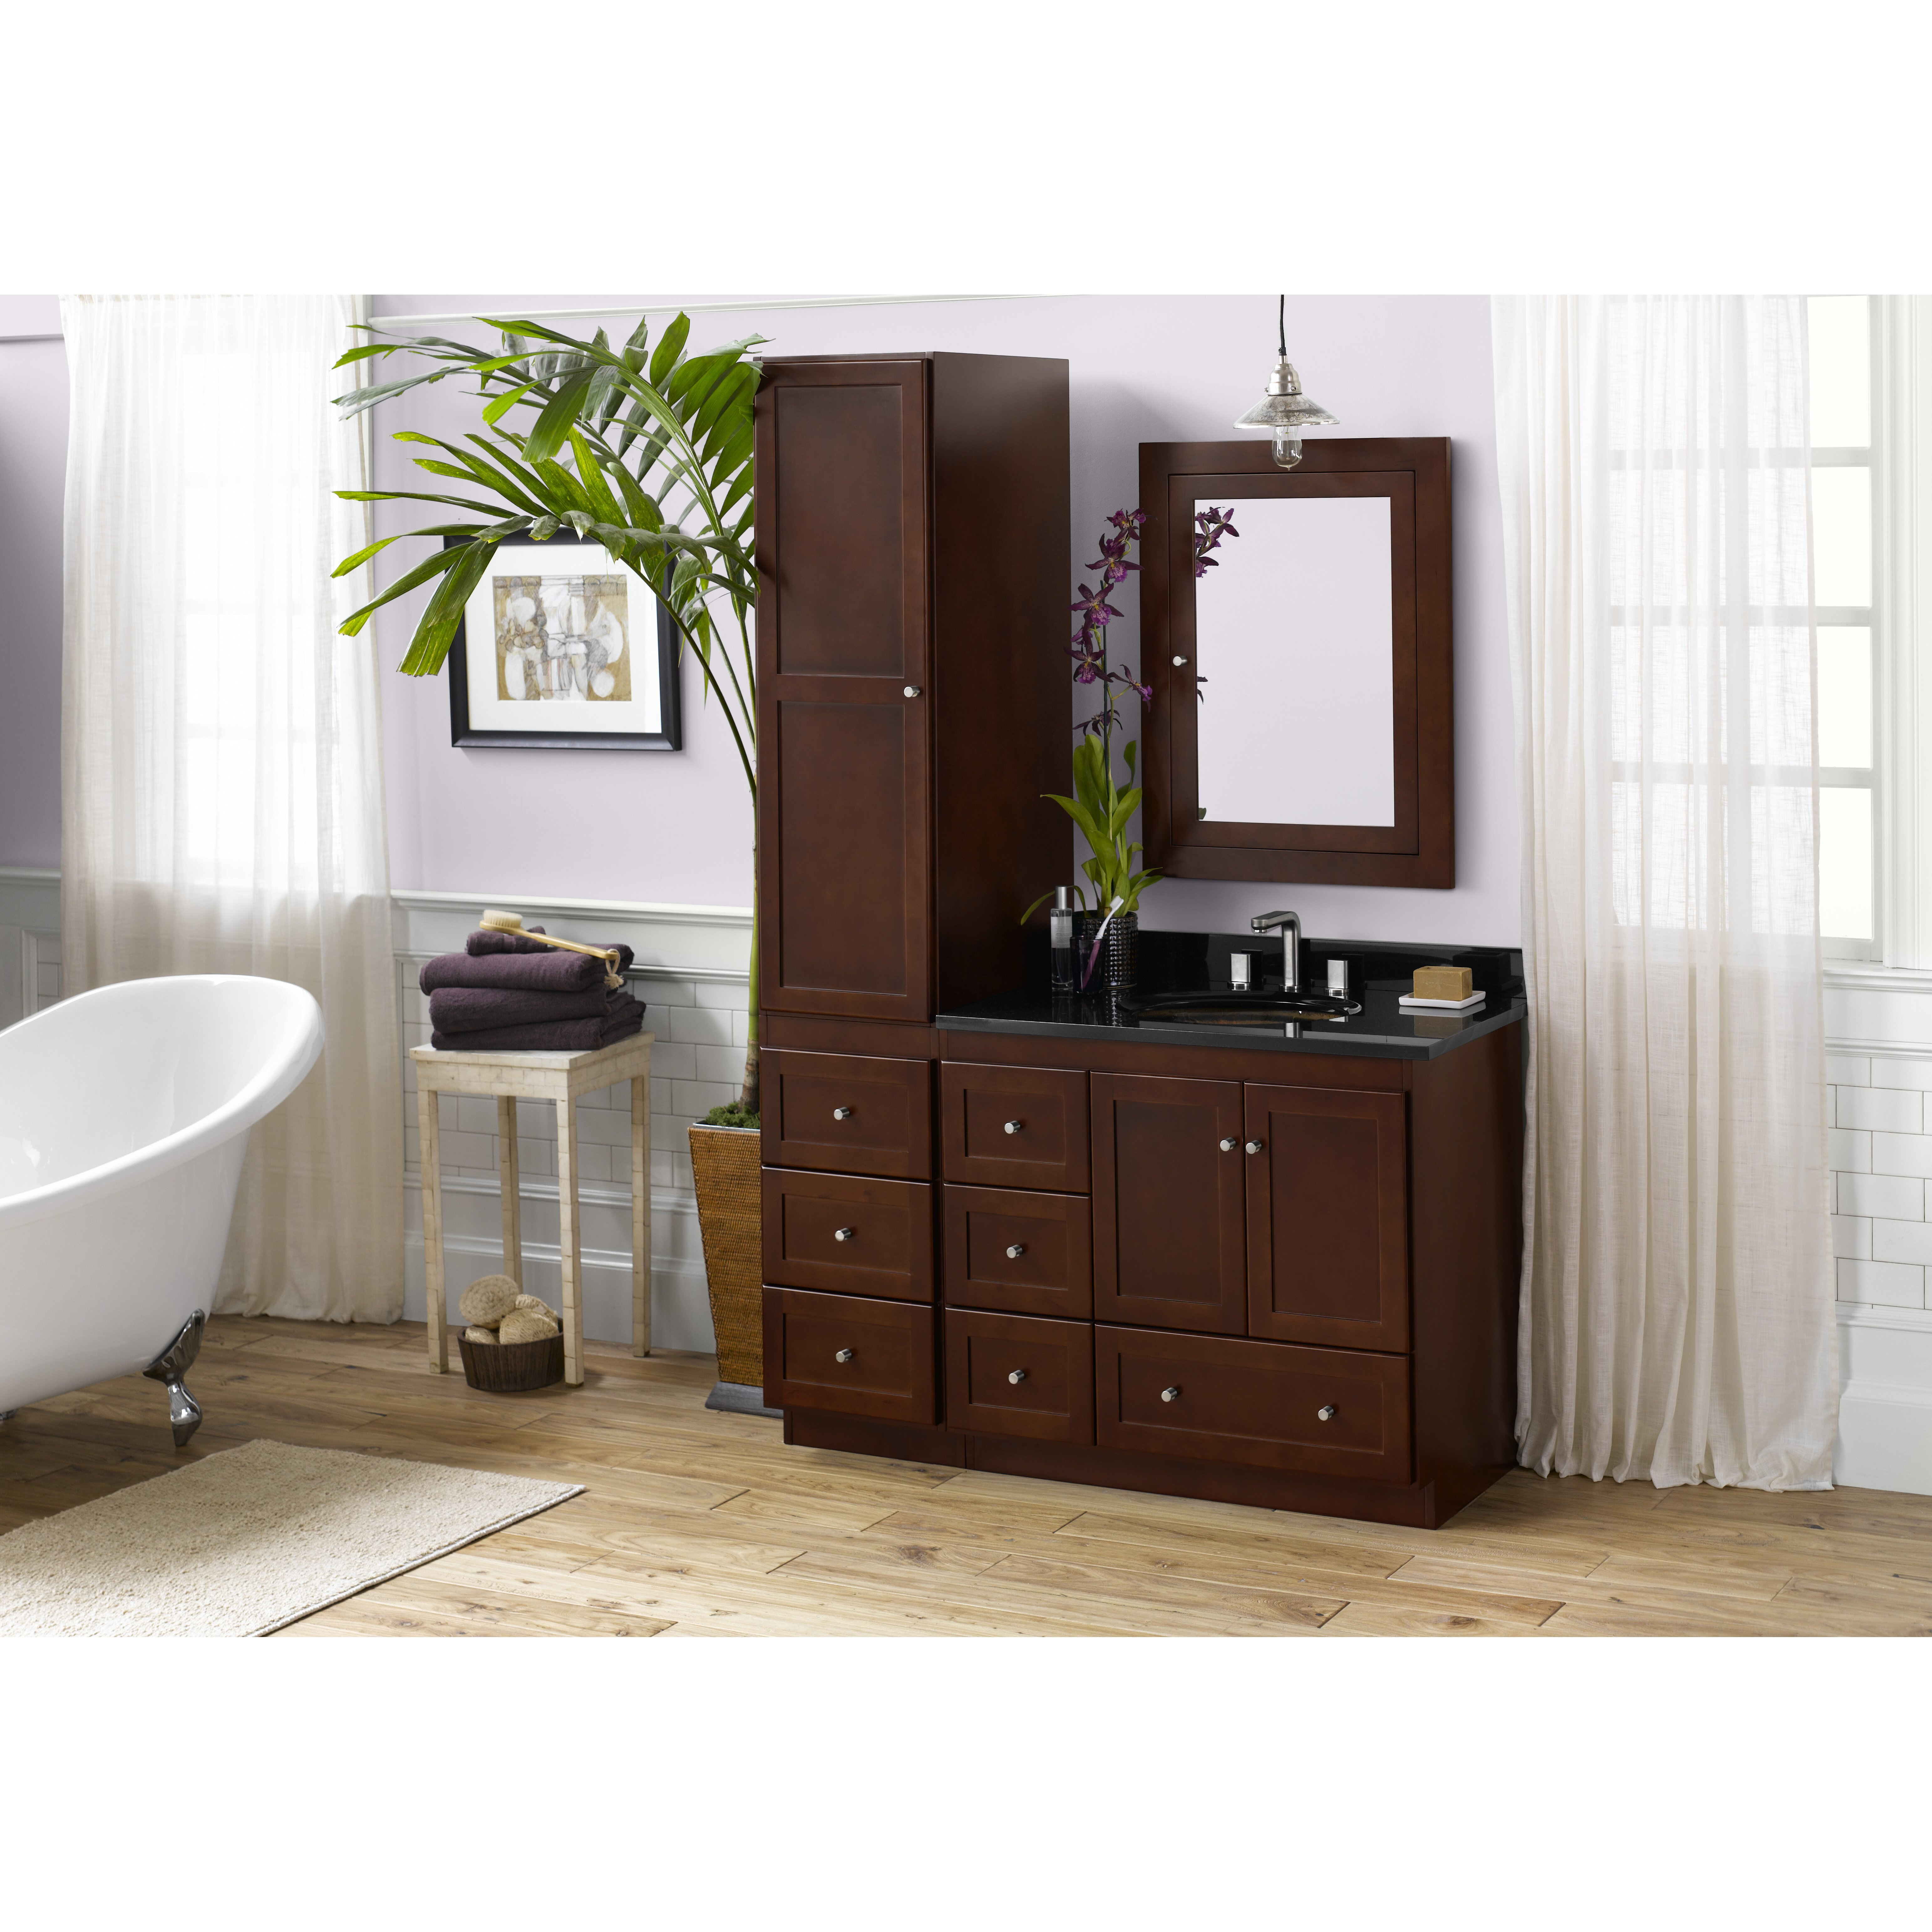 Shaker 36 bathroom vanity cabinet base in dark cherry wood doors on left wayfair - Bathroom vanity cabinet base only ...